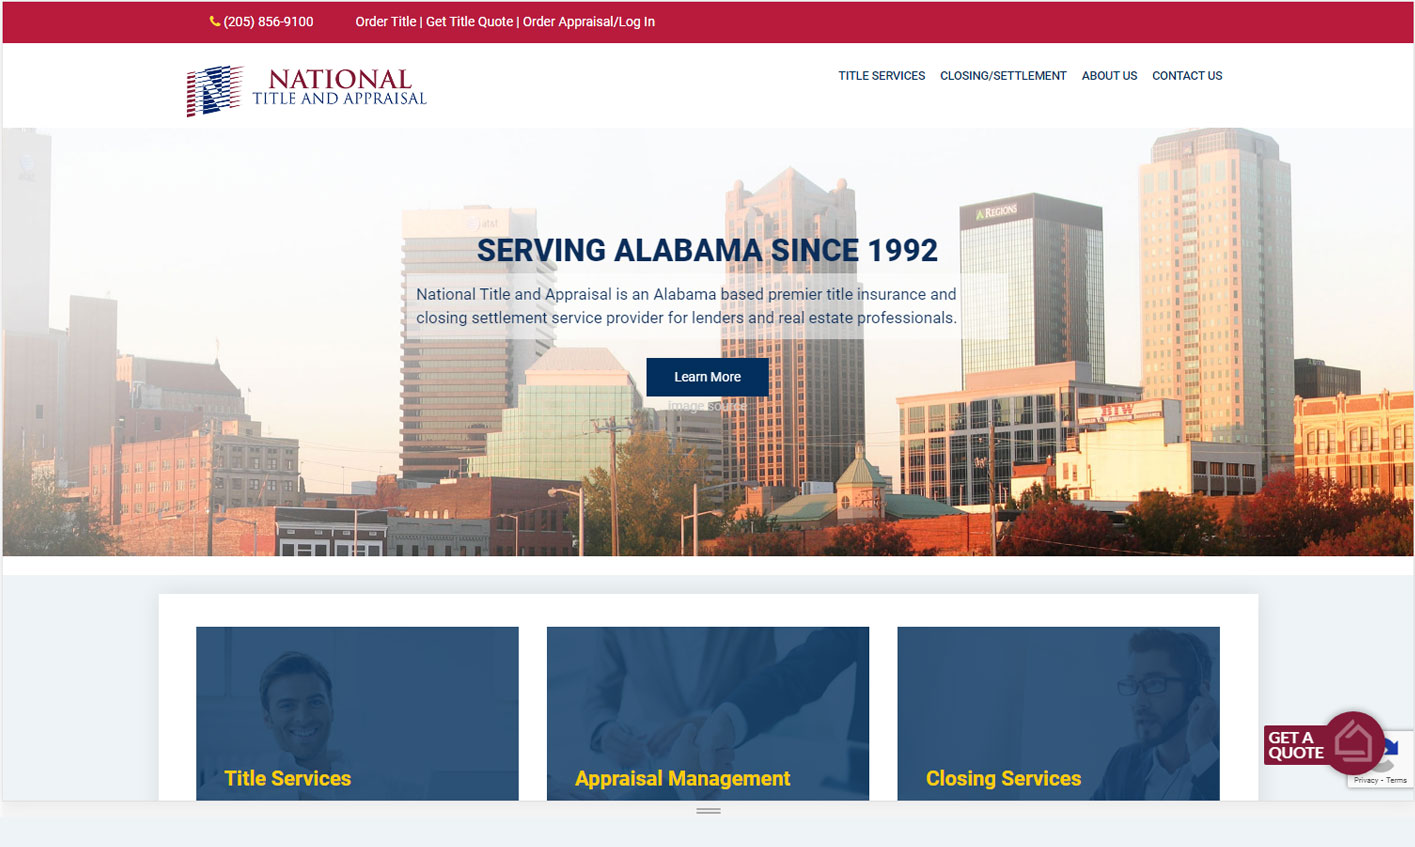 National Title Appraisal website